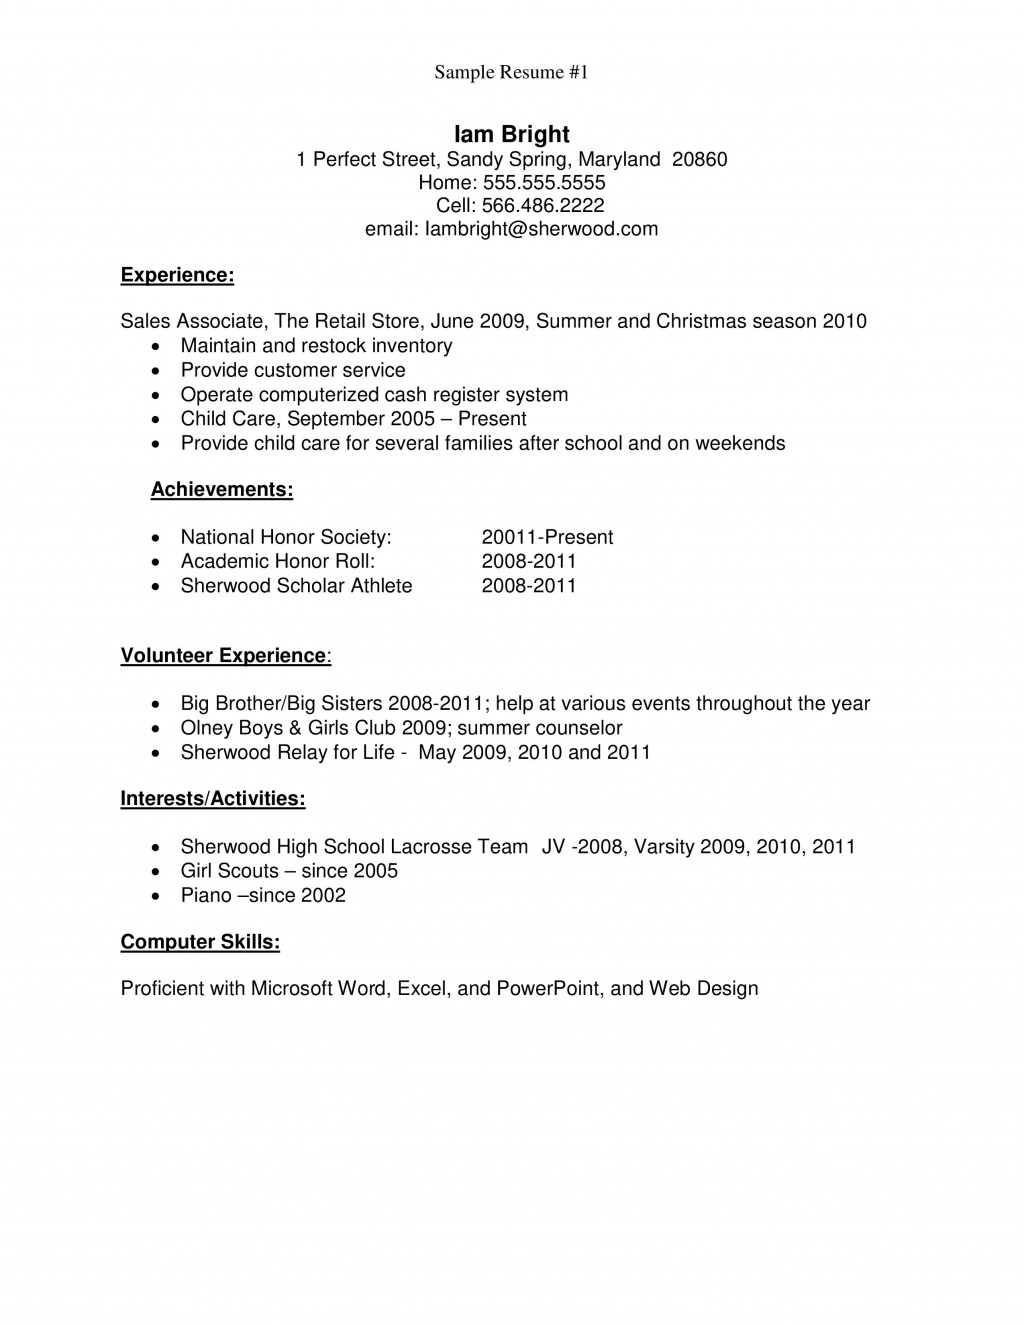 001 Fascinating Resume Template High School Student Image  Students Easy For Curriculum Vitae Format Pdf Free DownloadableLarge